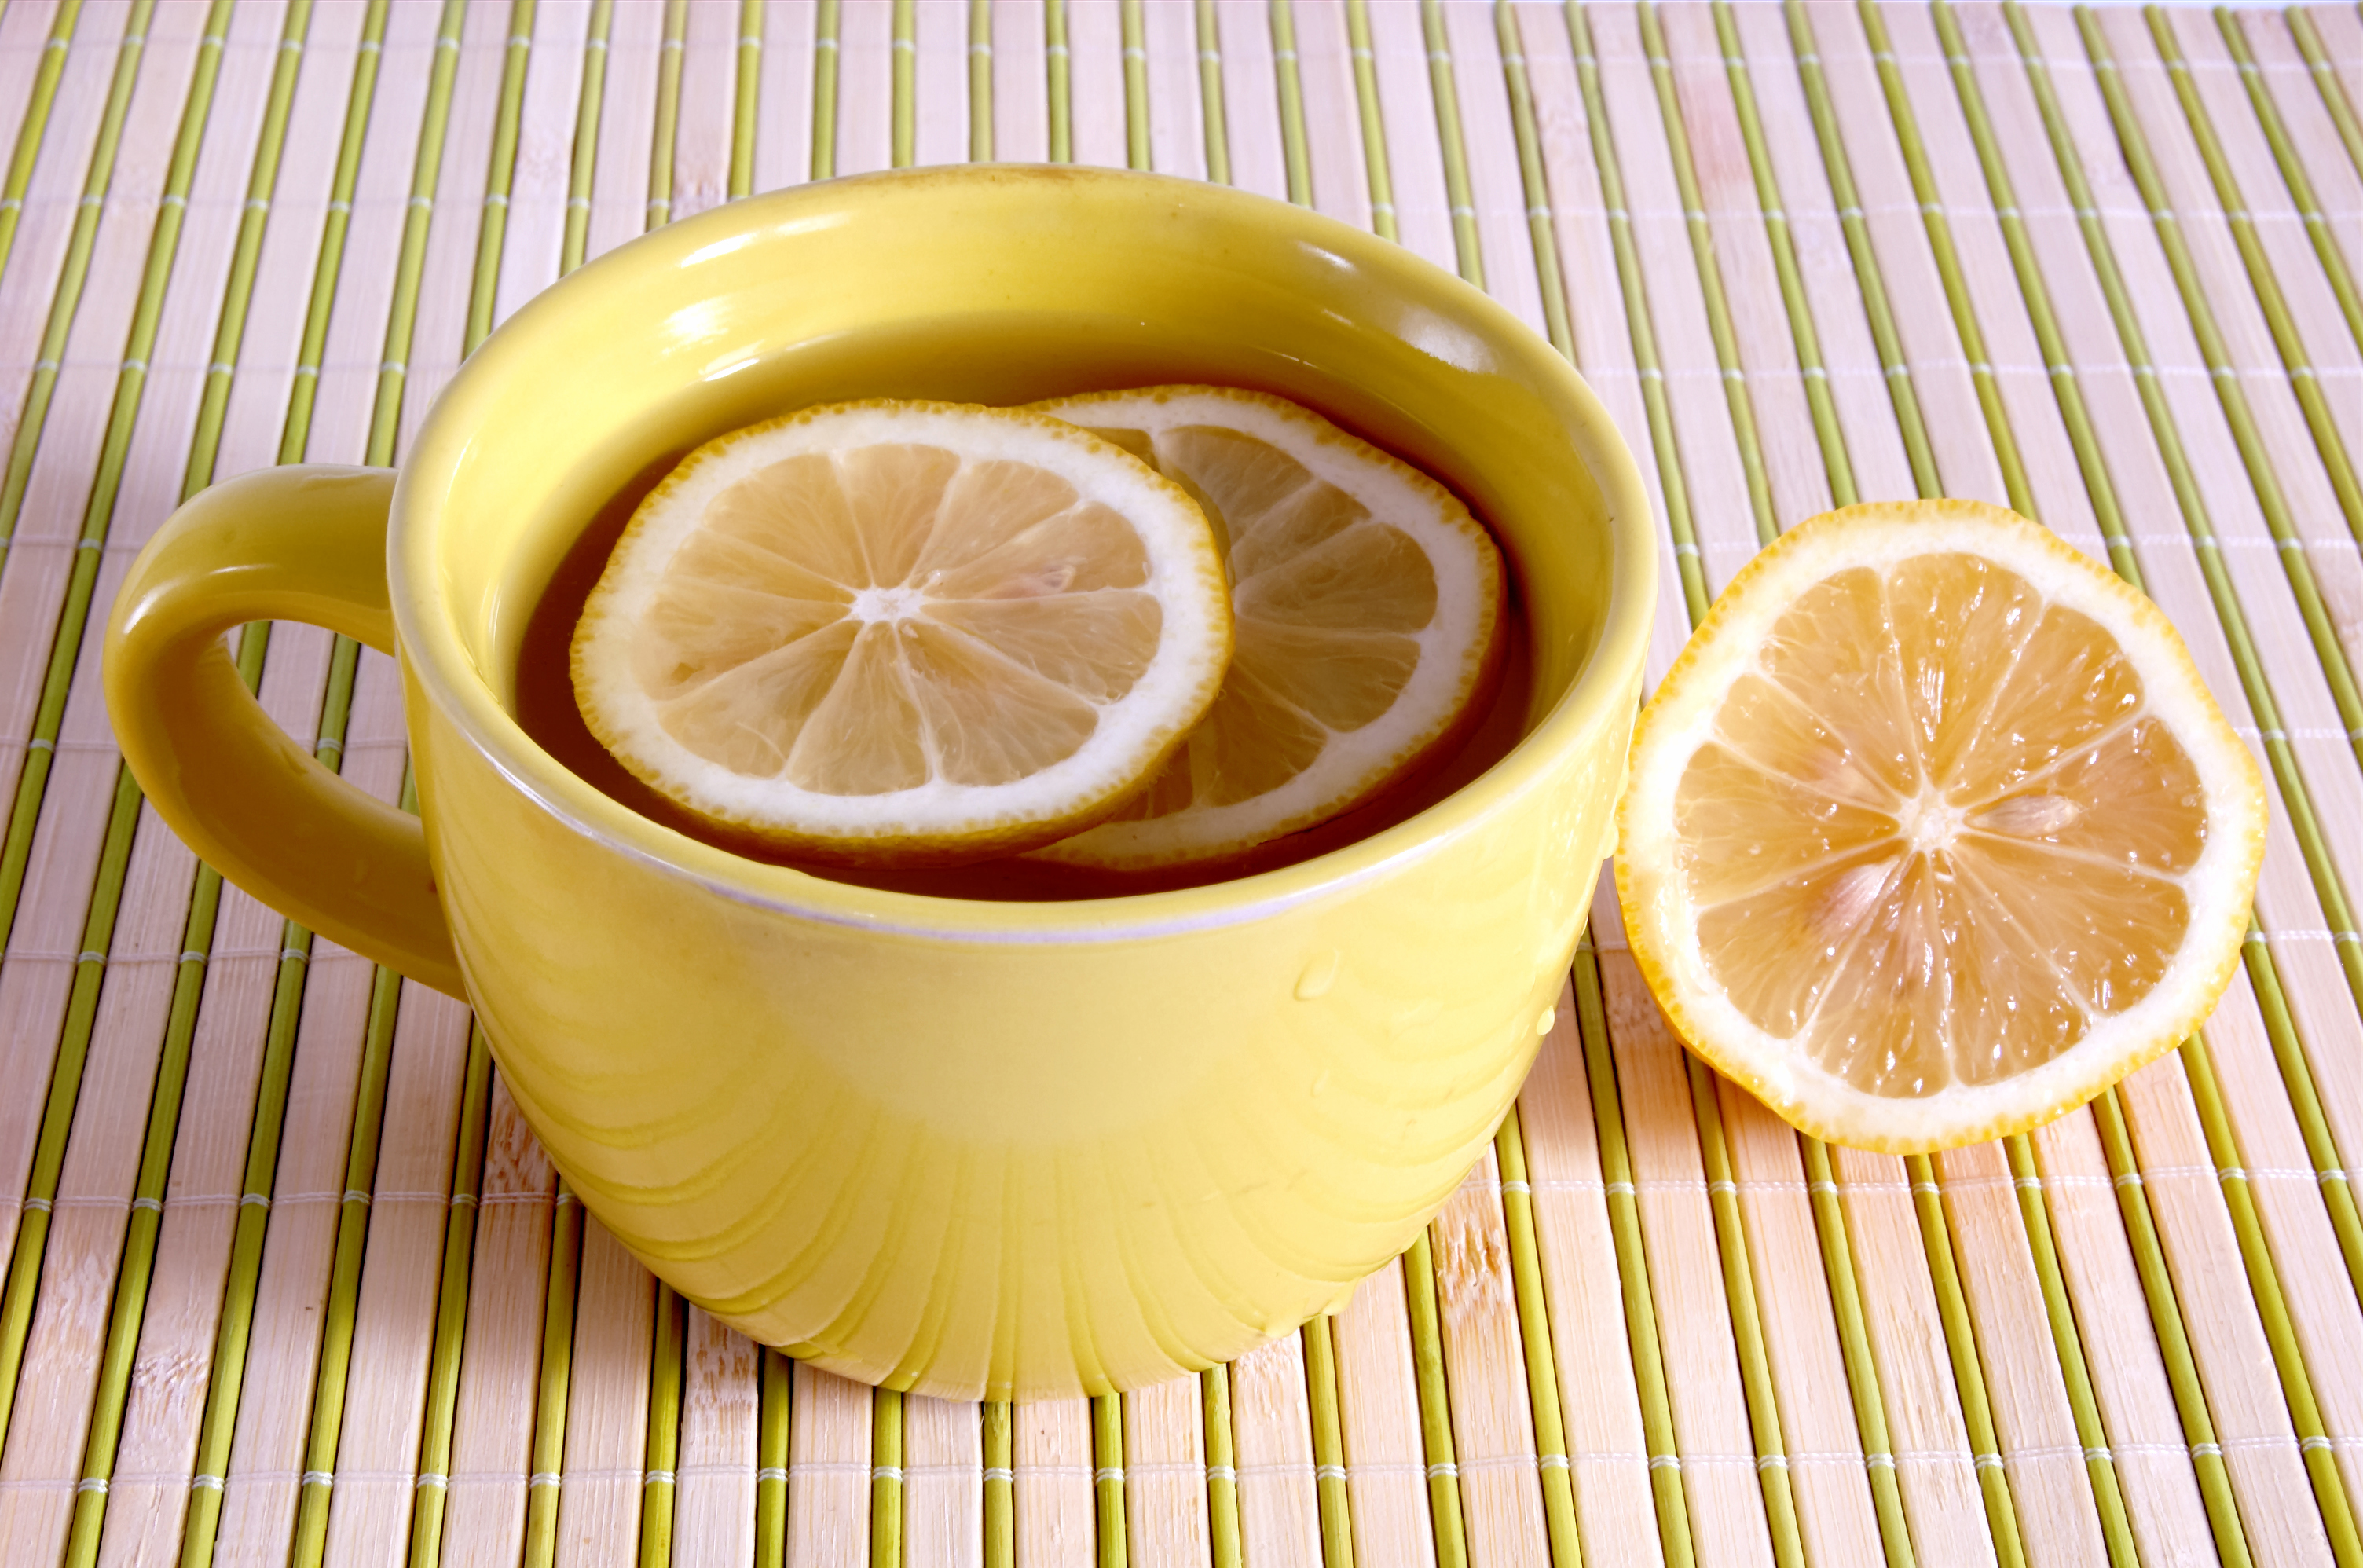 A cup with tea and lemons